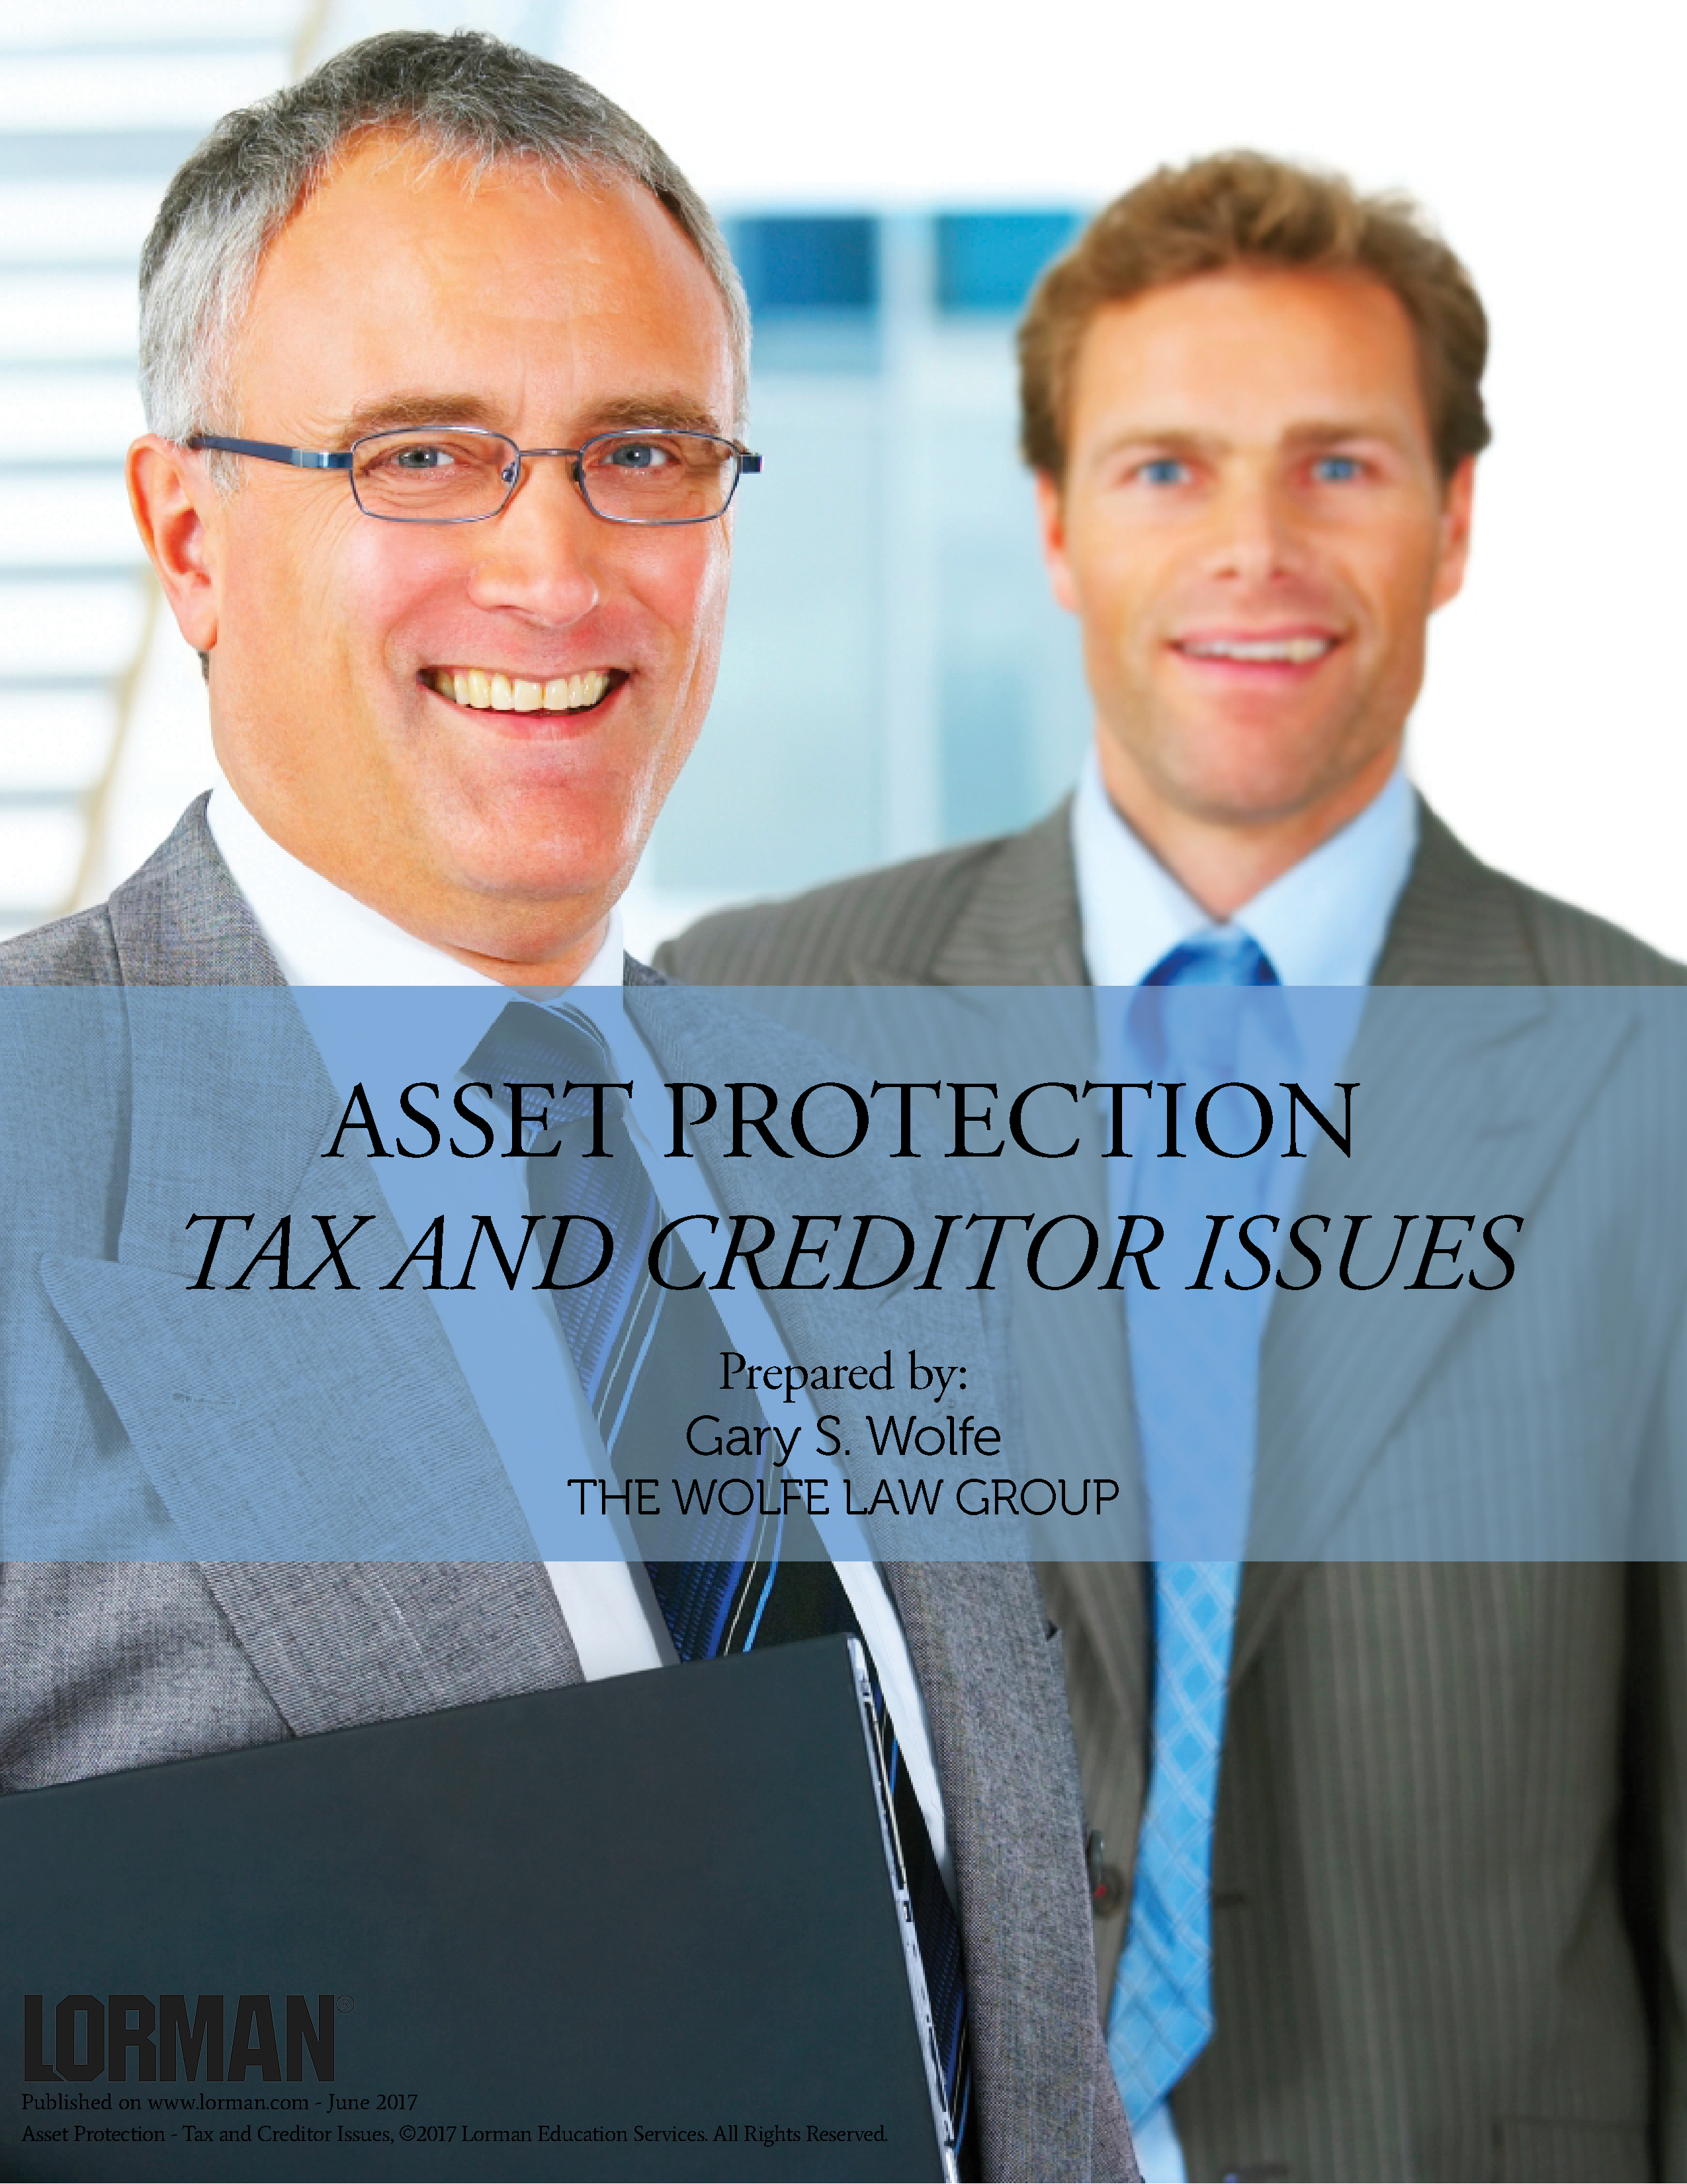 Asset Protection - Tax and Creditor Issues